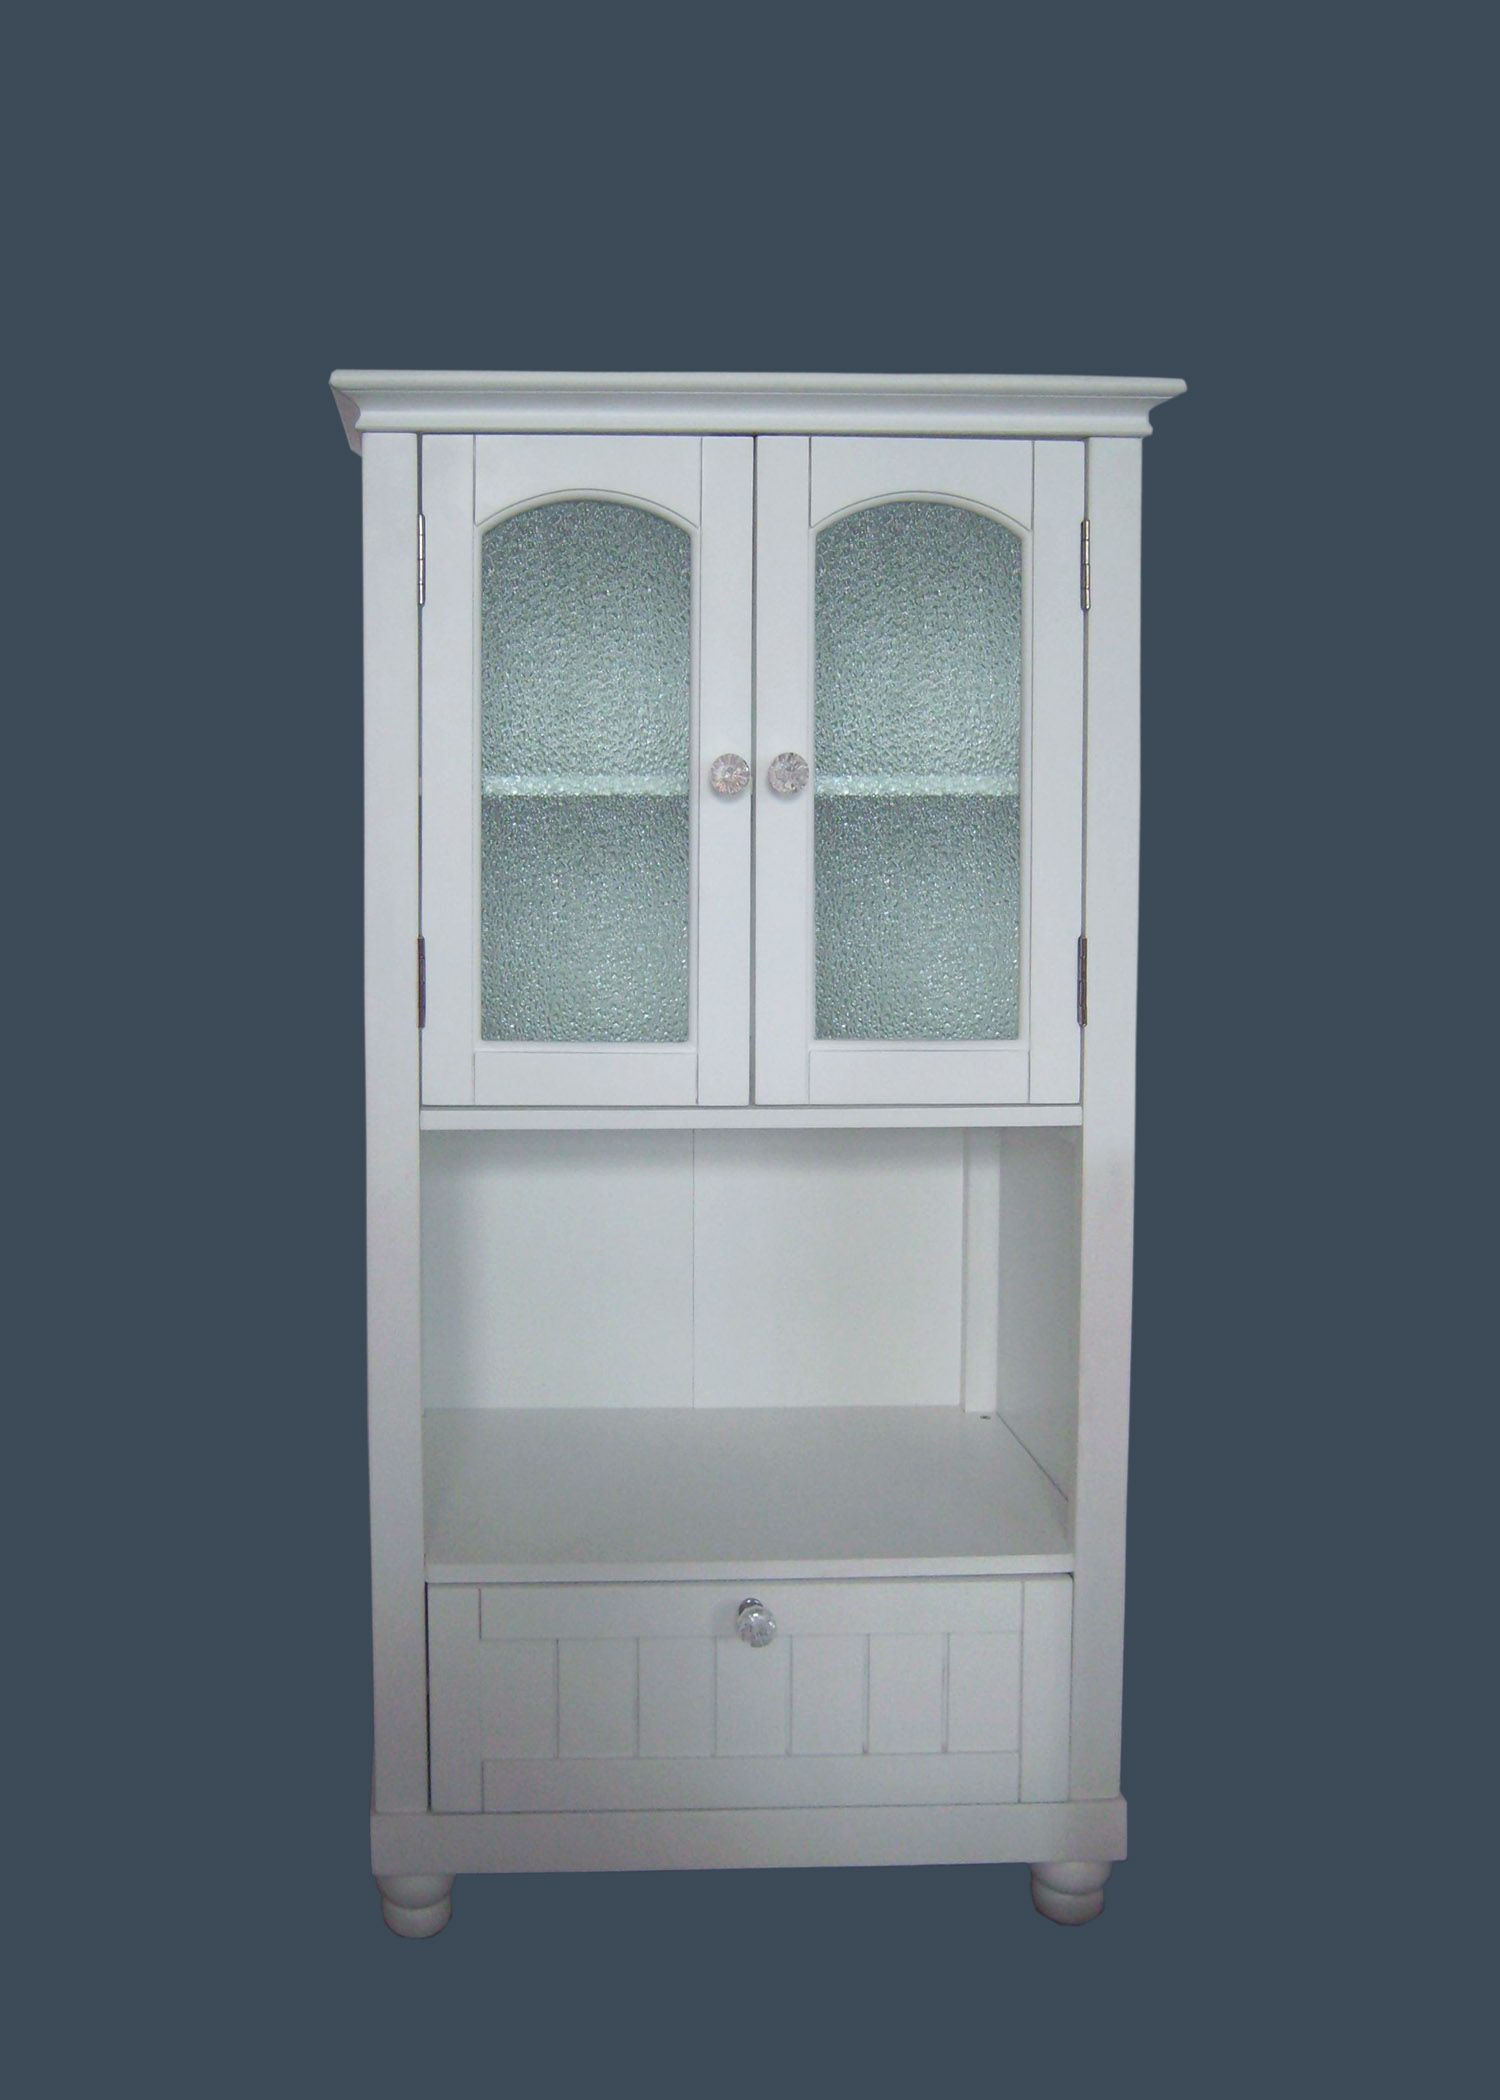 Bathroom medicine cabinet ideas glass door bathroom cabinet 002 bathroom medicine cabinet ideas glass door bathroom cabinet 002 china wooden cabinet planetlyrics Gallery